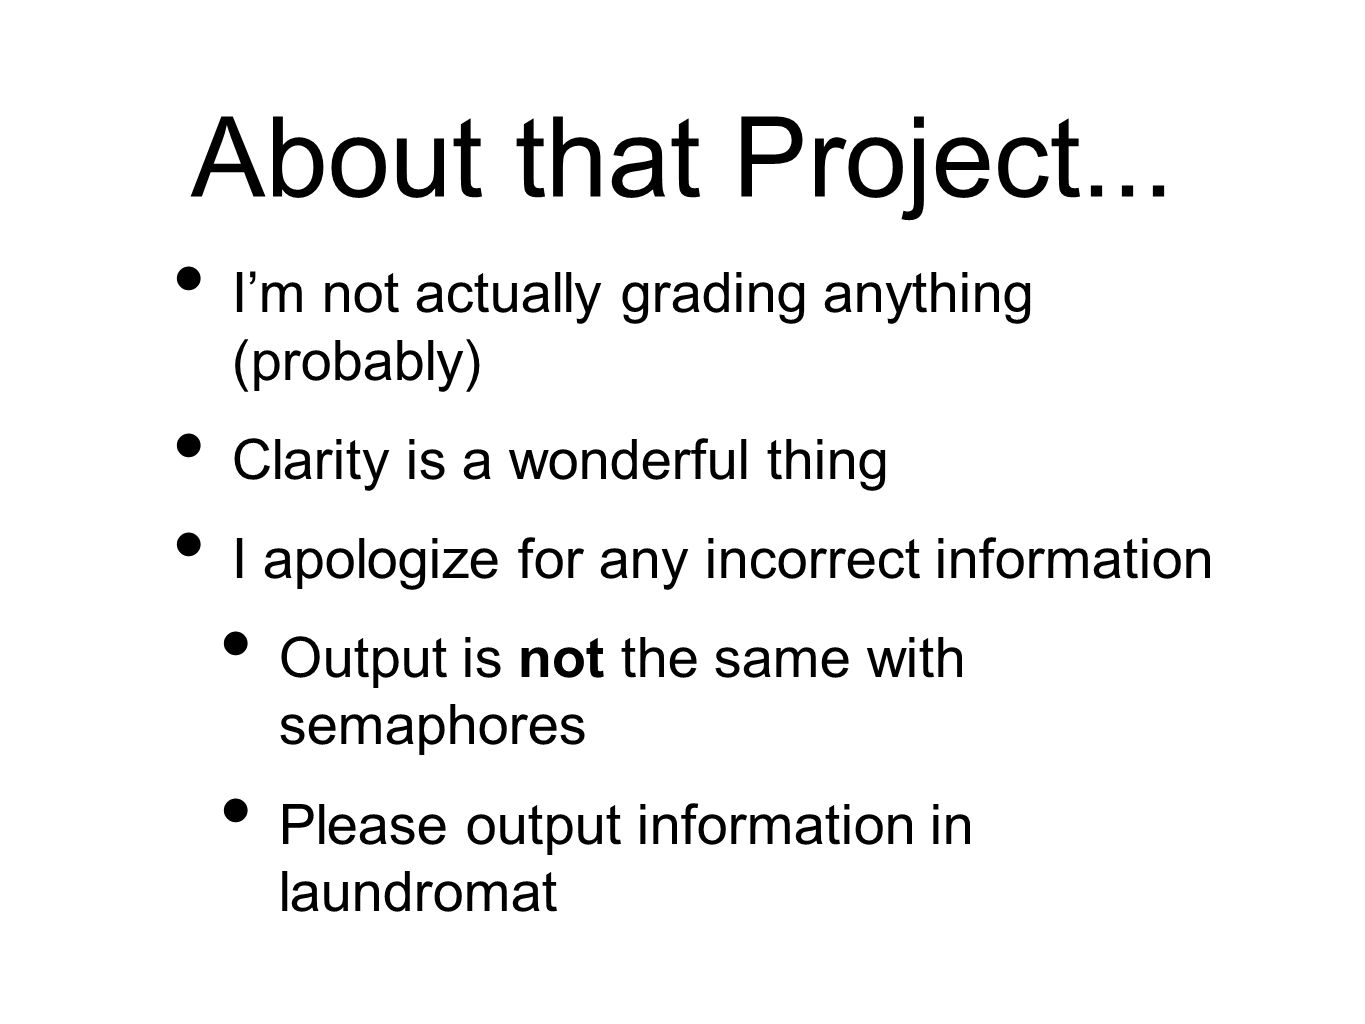 About that Project...